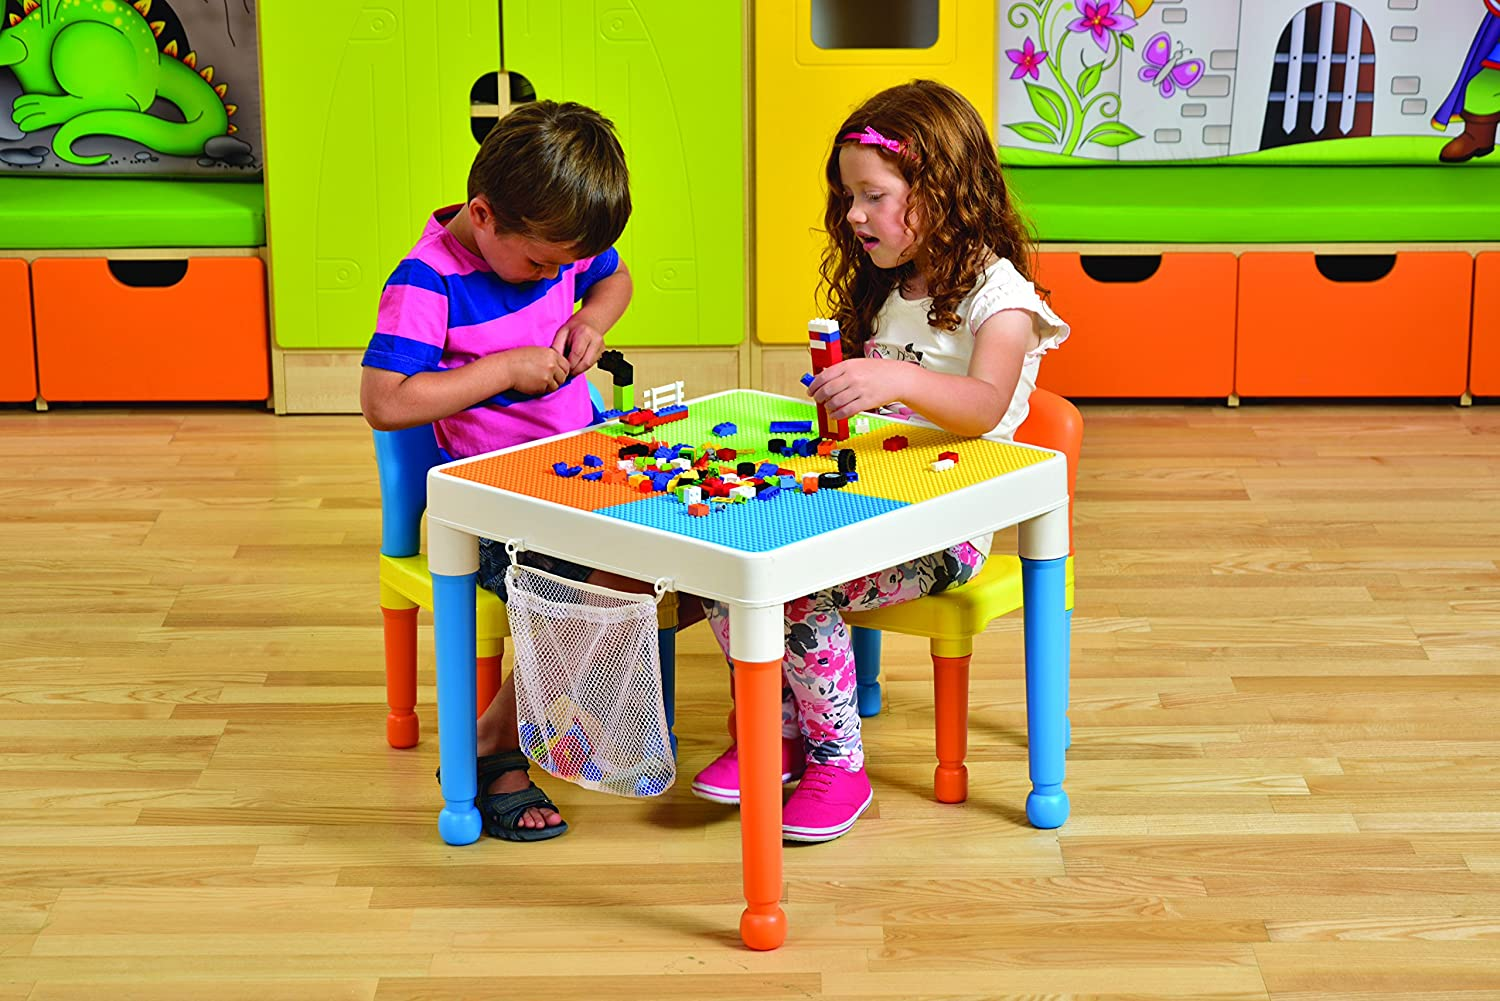 Liberty House Toys 652F-1 Multi-Purpose Building Block Construction Table with Storage Bag